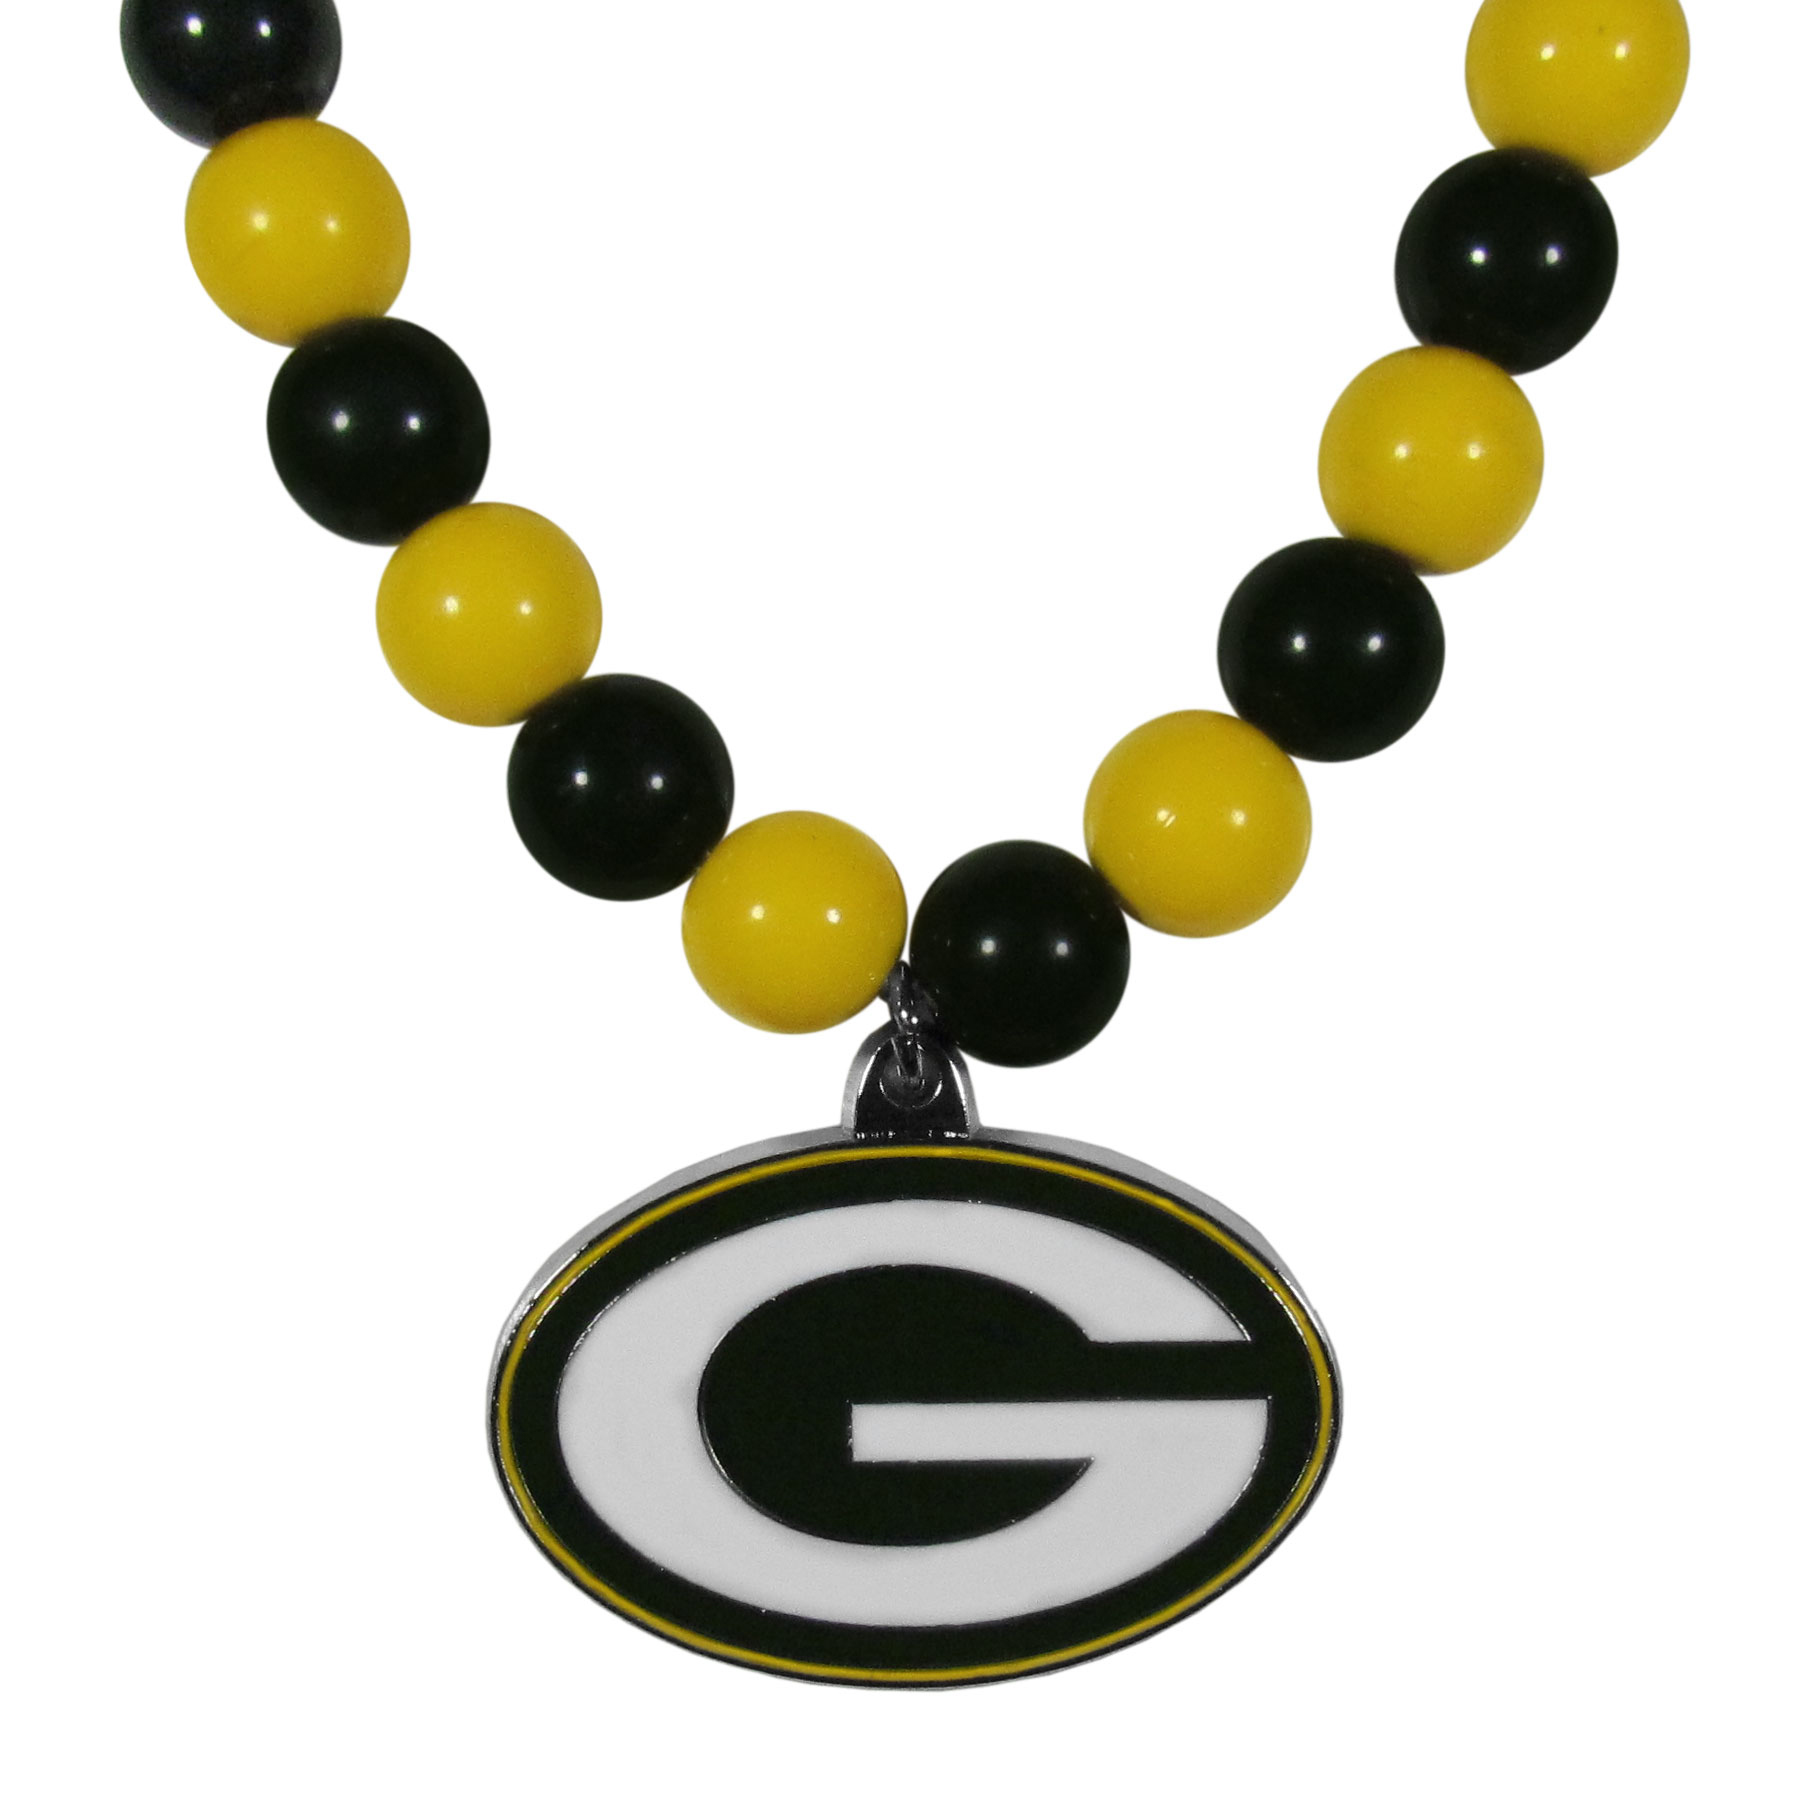 Green Bay Packers Fan Bead Necklace - Make a big statement with our fan bead necklaces! These brightly colored necklace have a 24 inch string of alternating colored beads with an extra large, high-polish Green Bay Packers pendant.